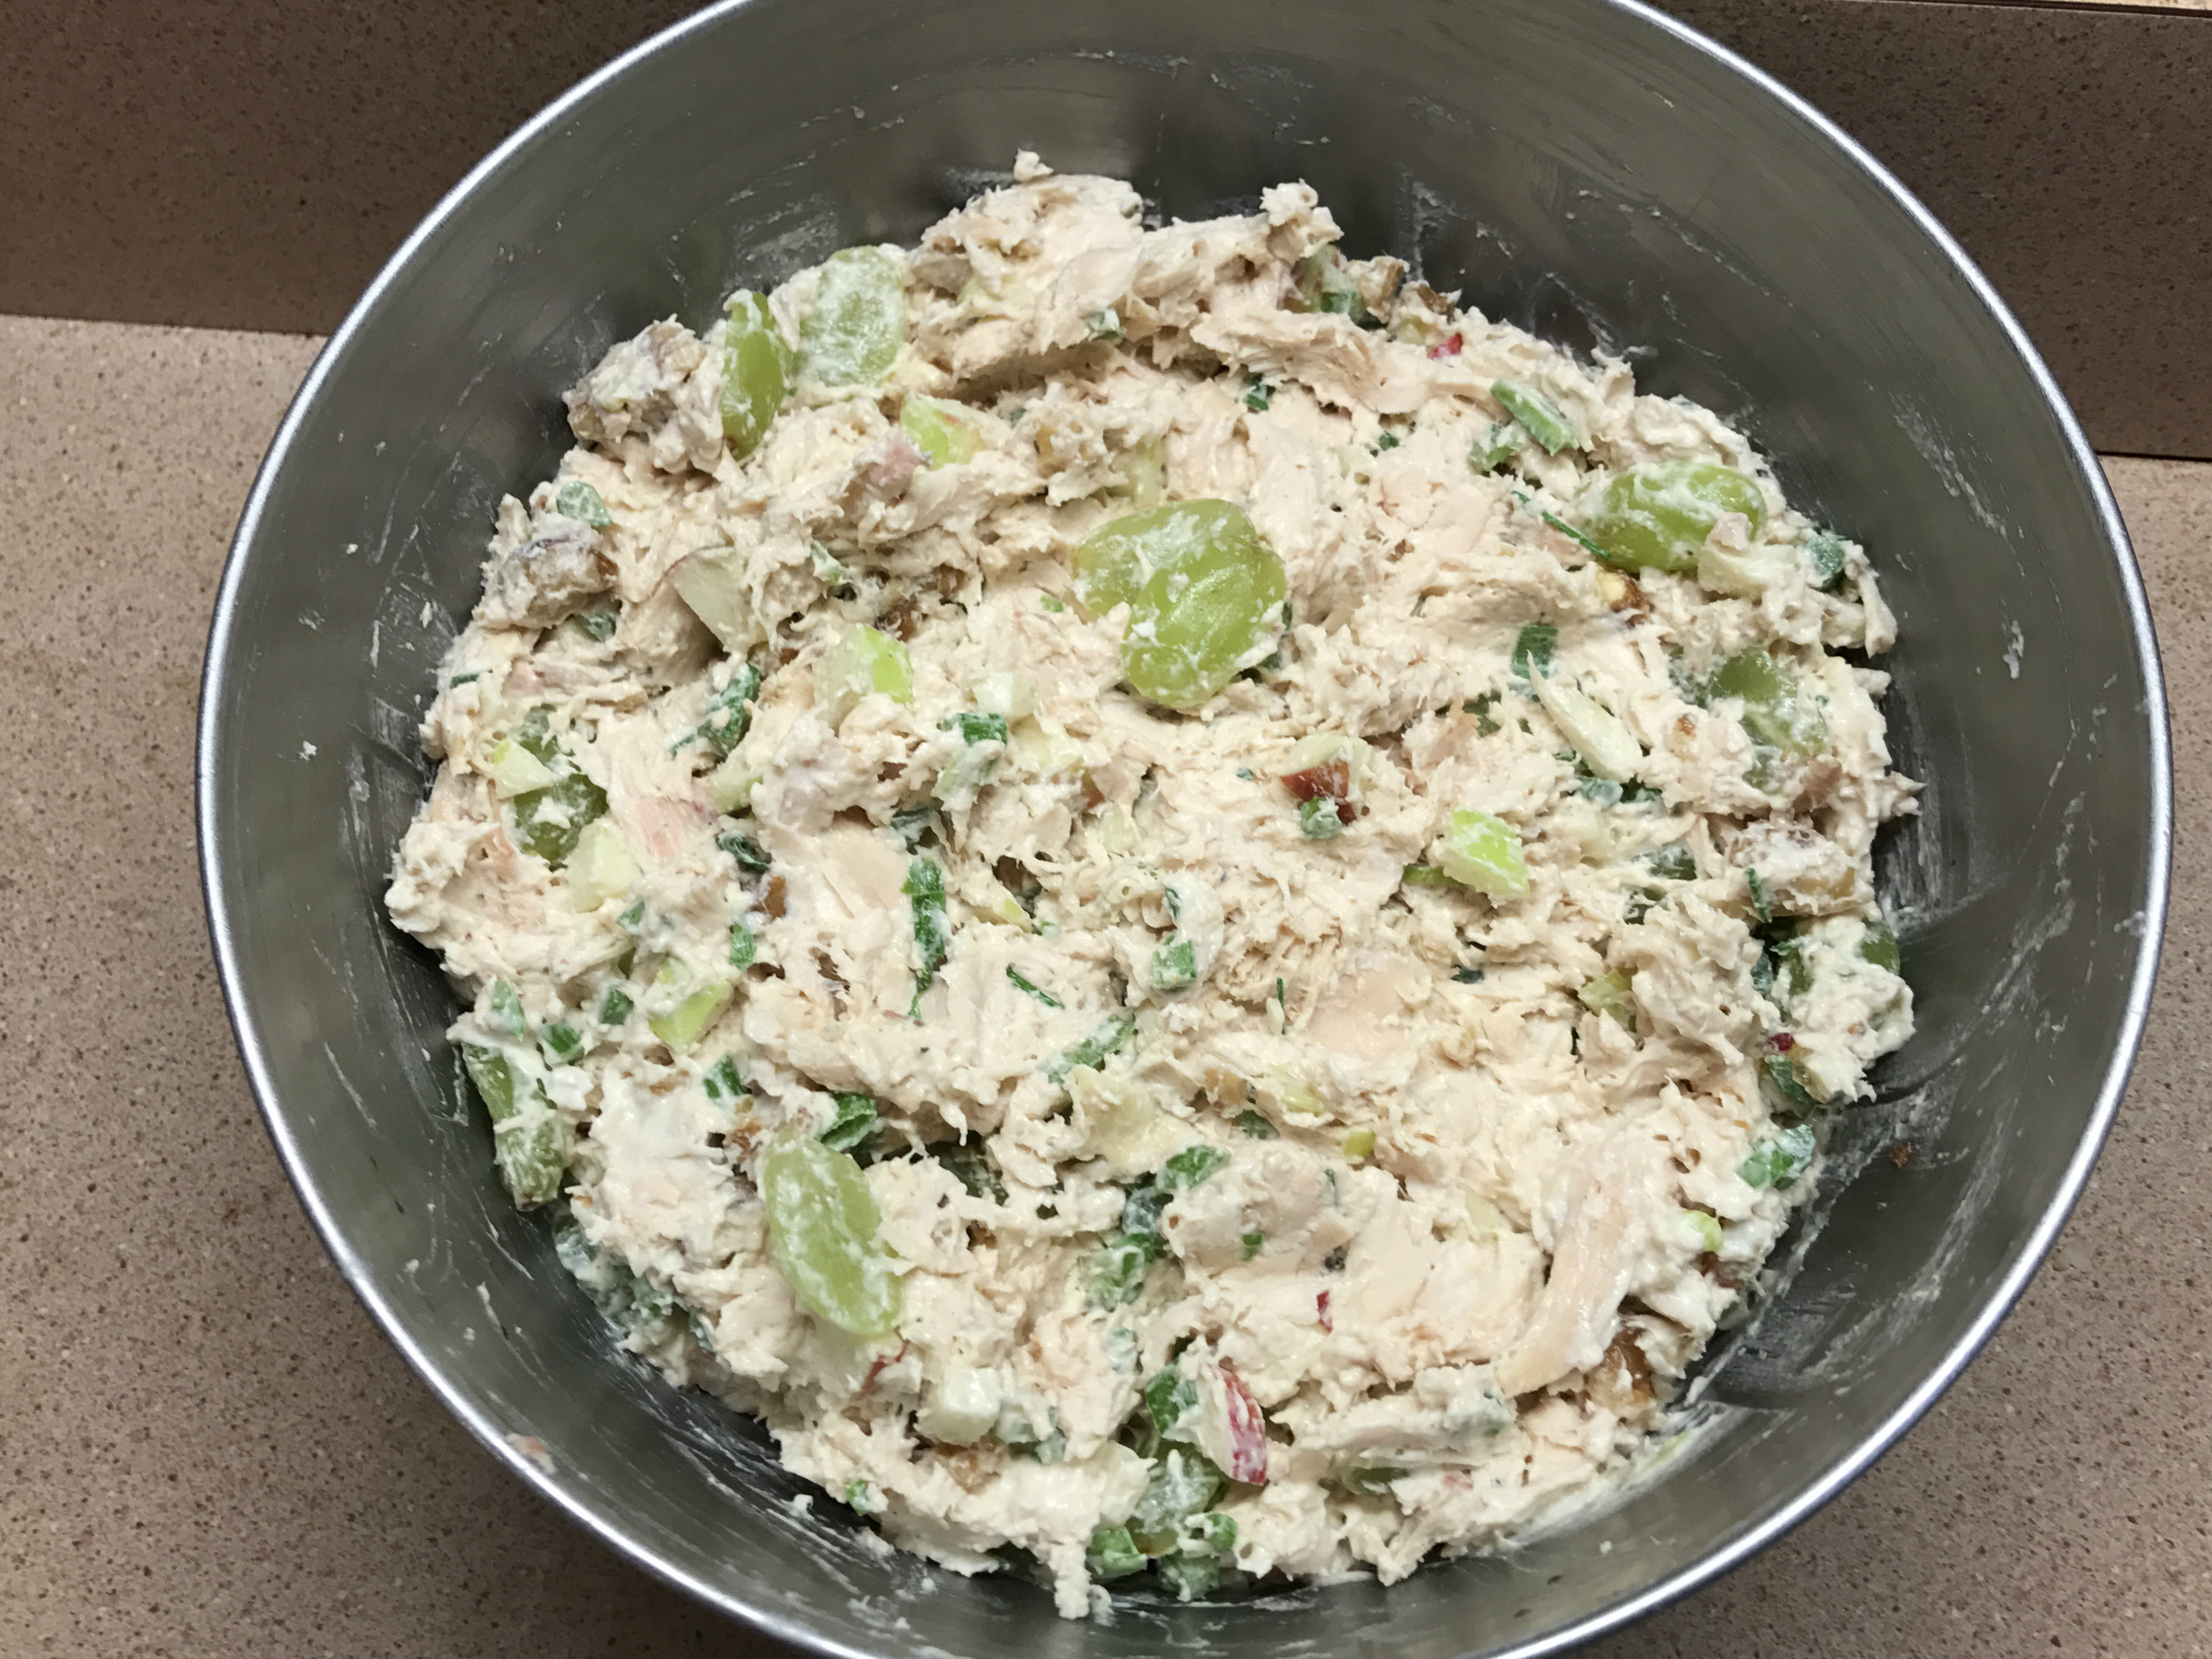 ckicken salad mixed in bowl